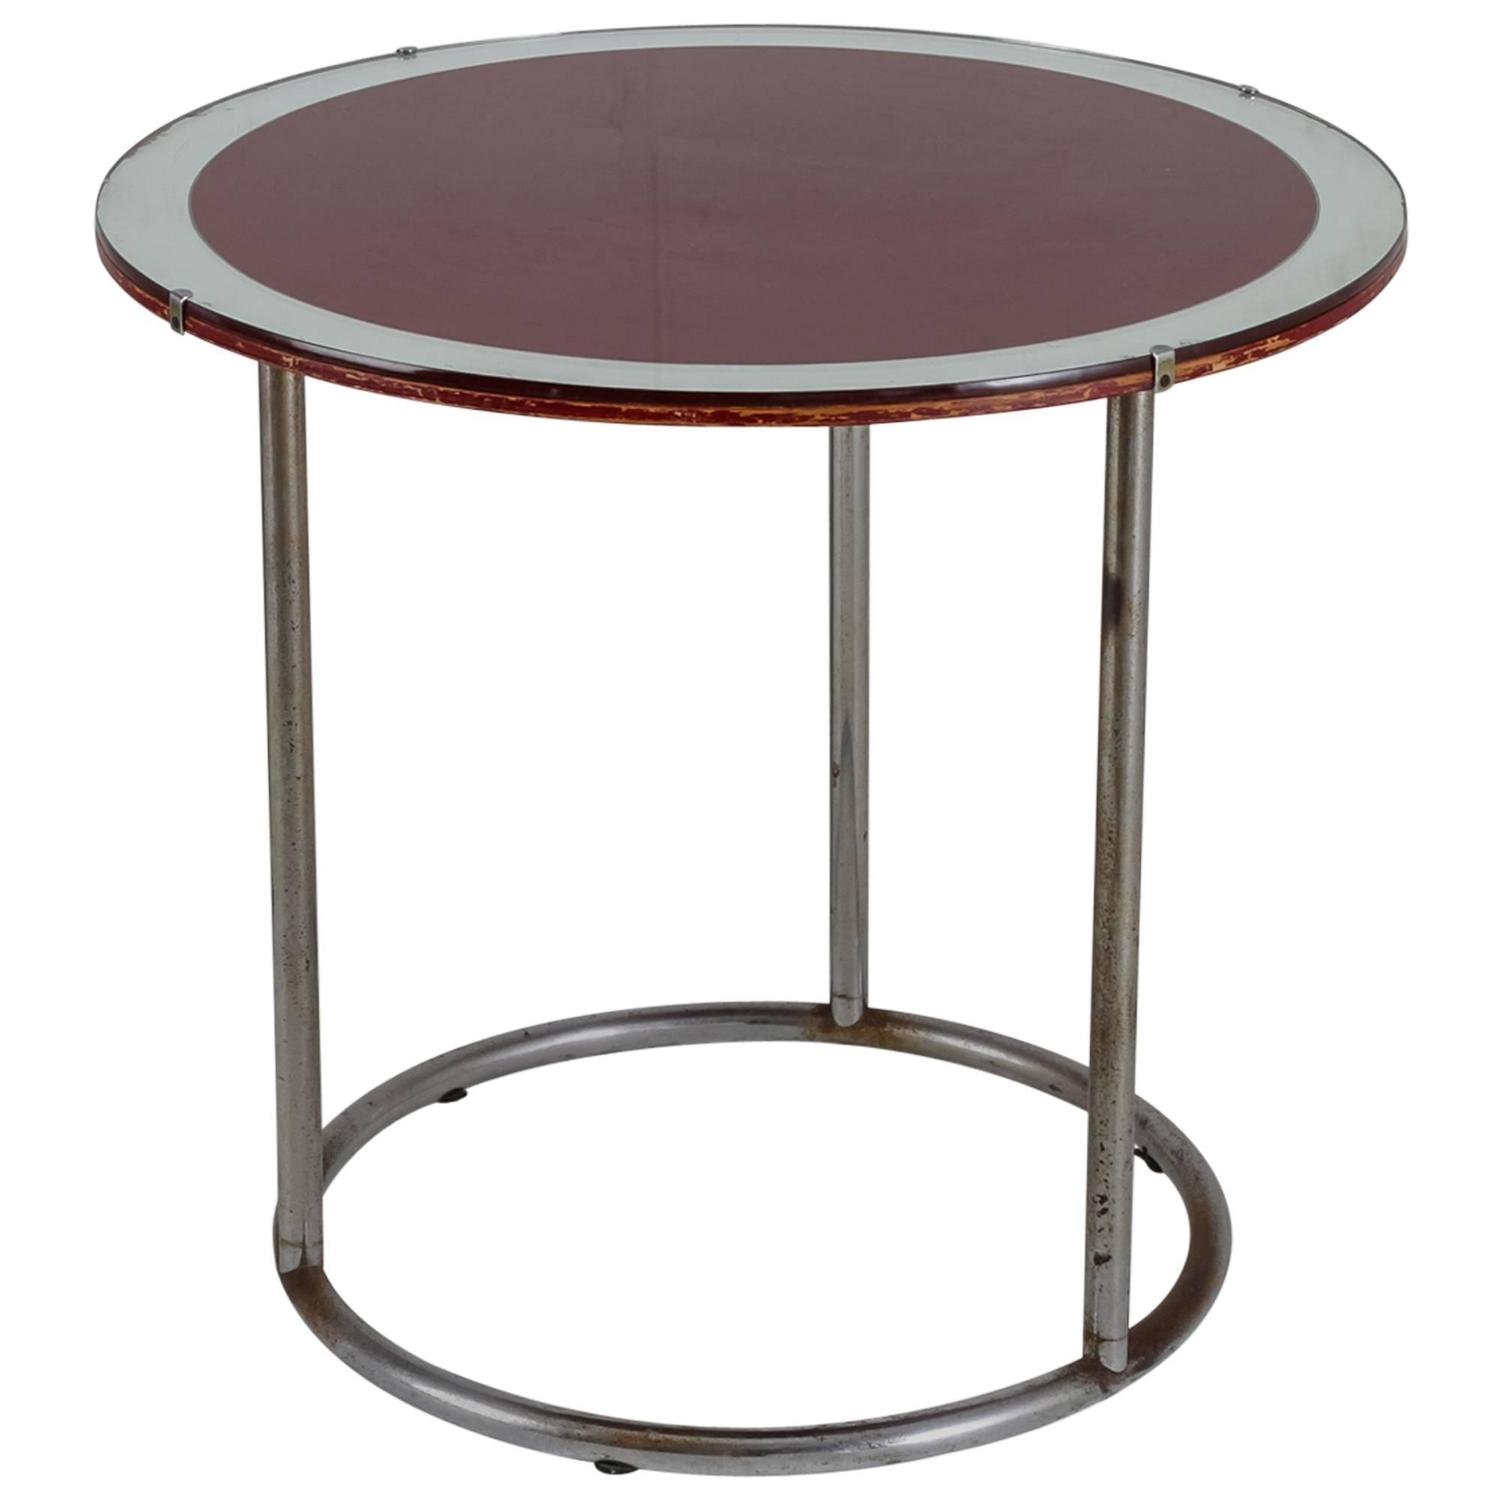 1920s tubular metal table with red wood and glass top for Wood and glass cocktail tables